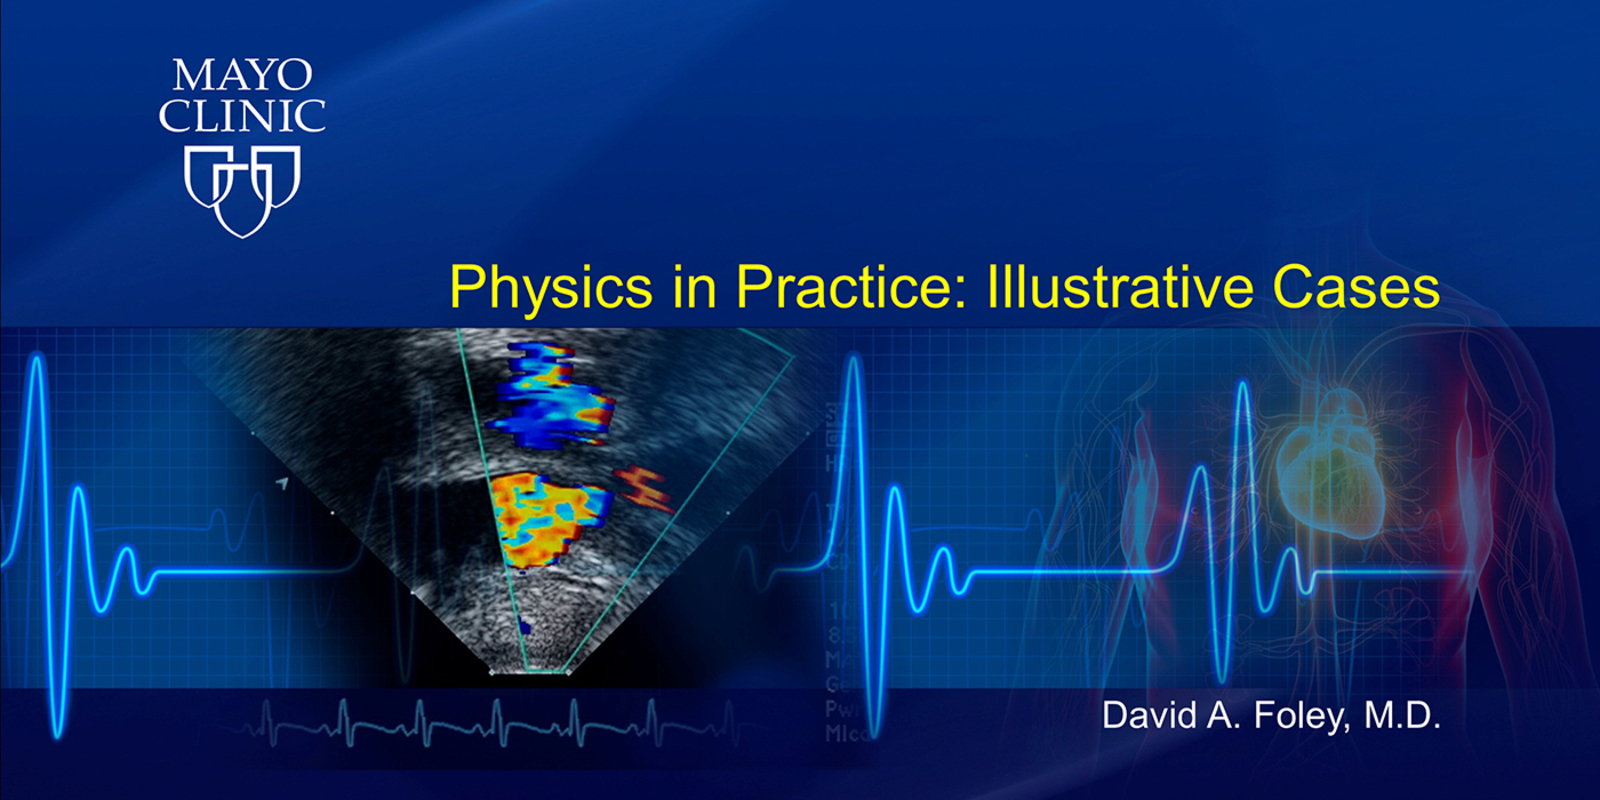 Physics in Practice: Illustrative Cases